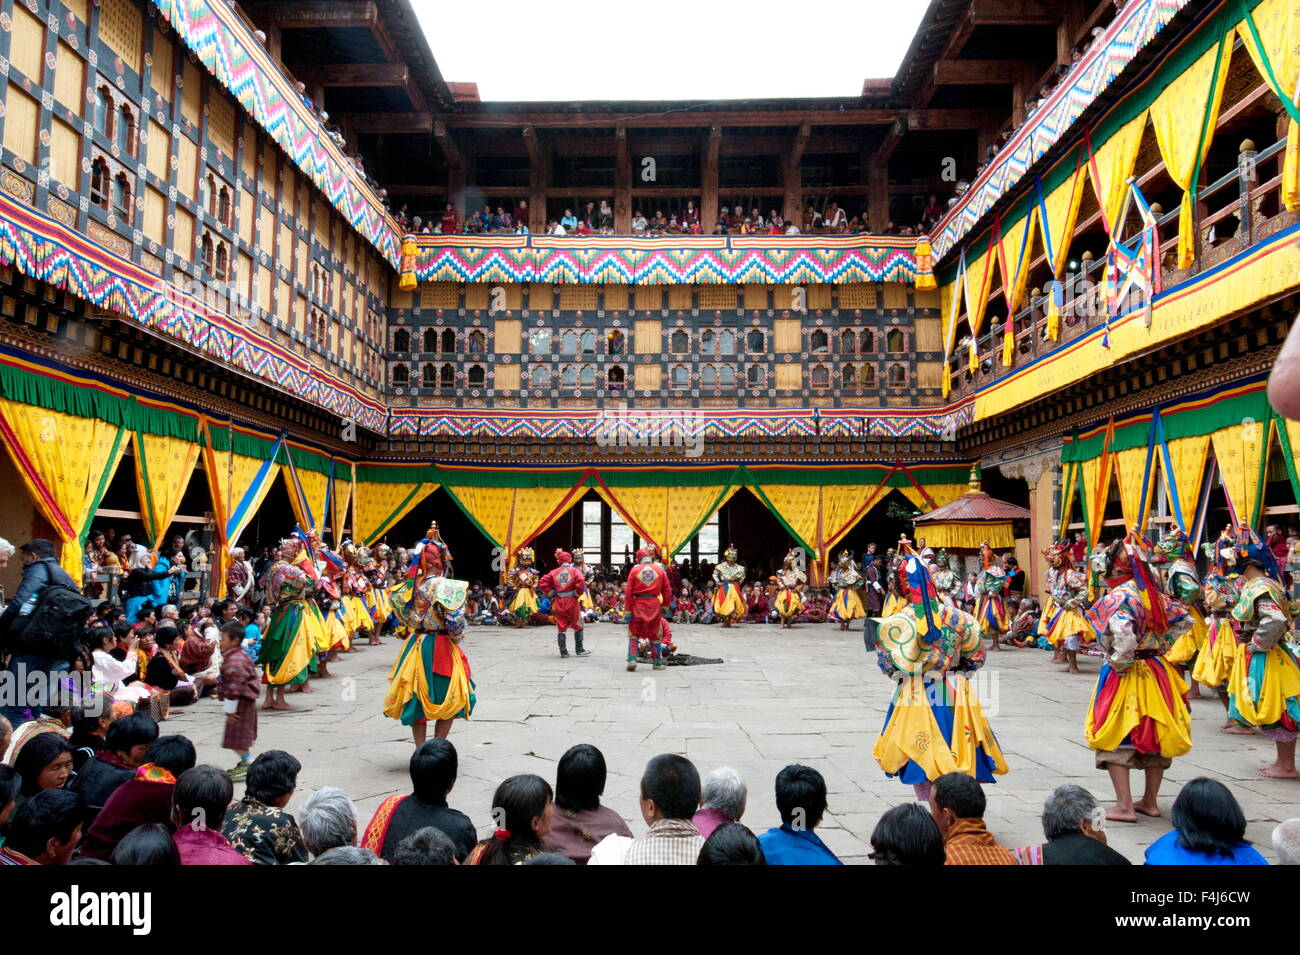 Monks performing religious ceremonial dances in the inner monastery courtyard at the Paro Tsechu, Paro, Bhutan - Stock Image